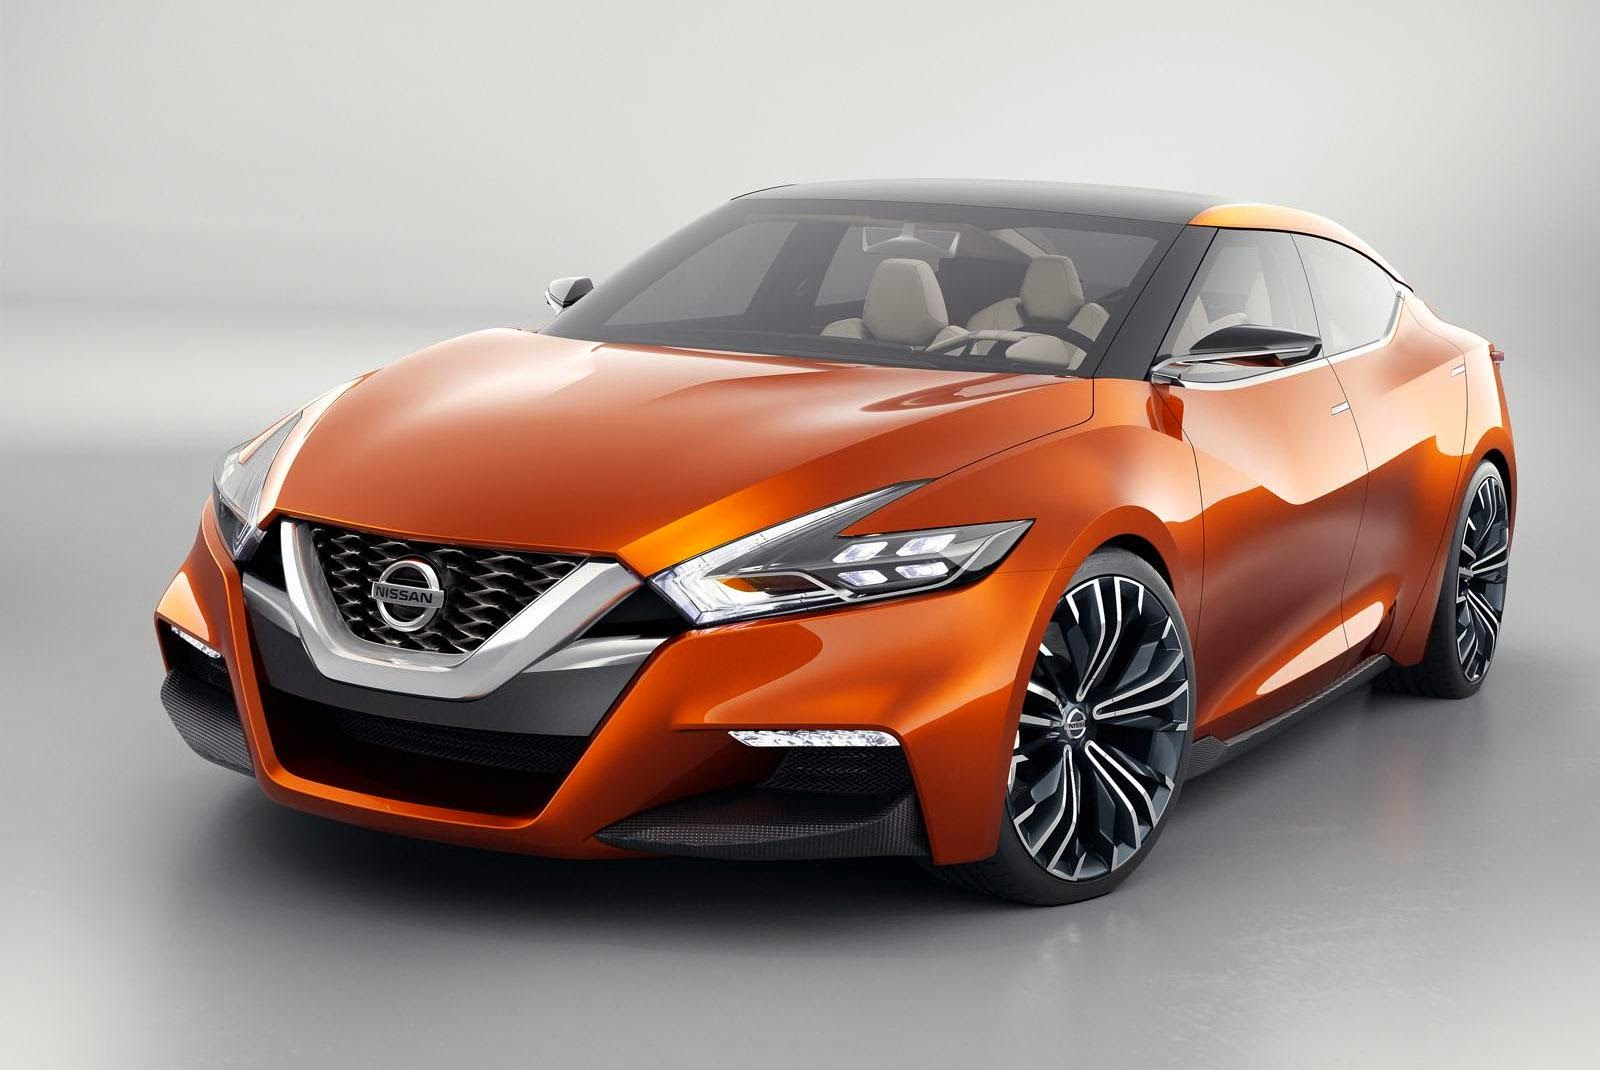 2017 Nissan Murano Release Date And Price Http Suvsblog Blo